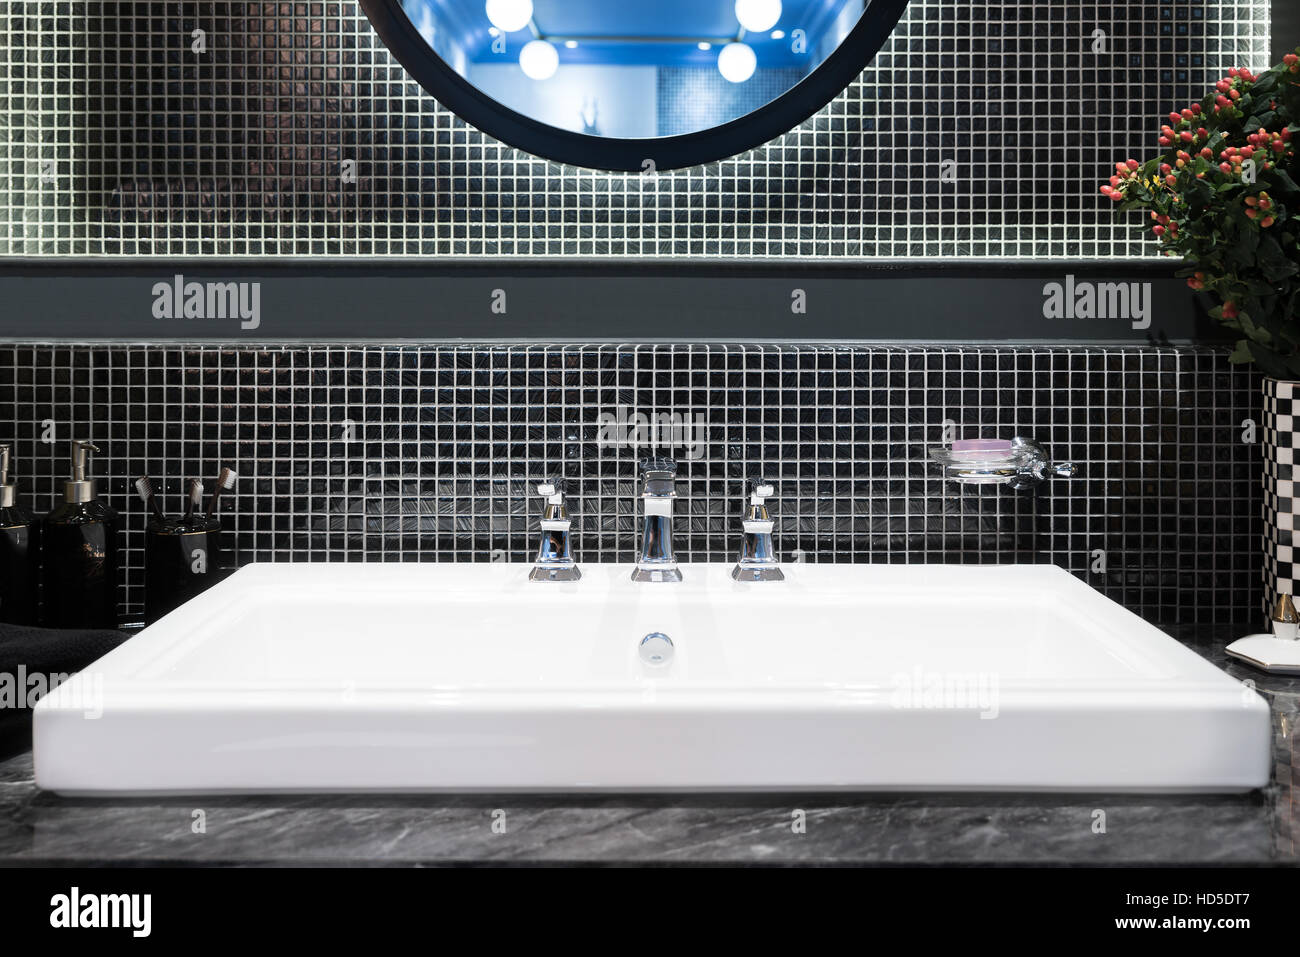 Interior of bathroom with sink basin and faucet. Modern design of bathroom. - Stock Image